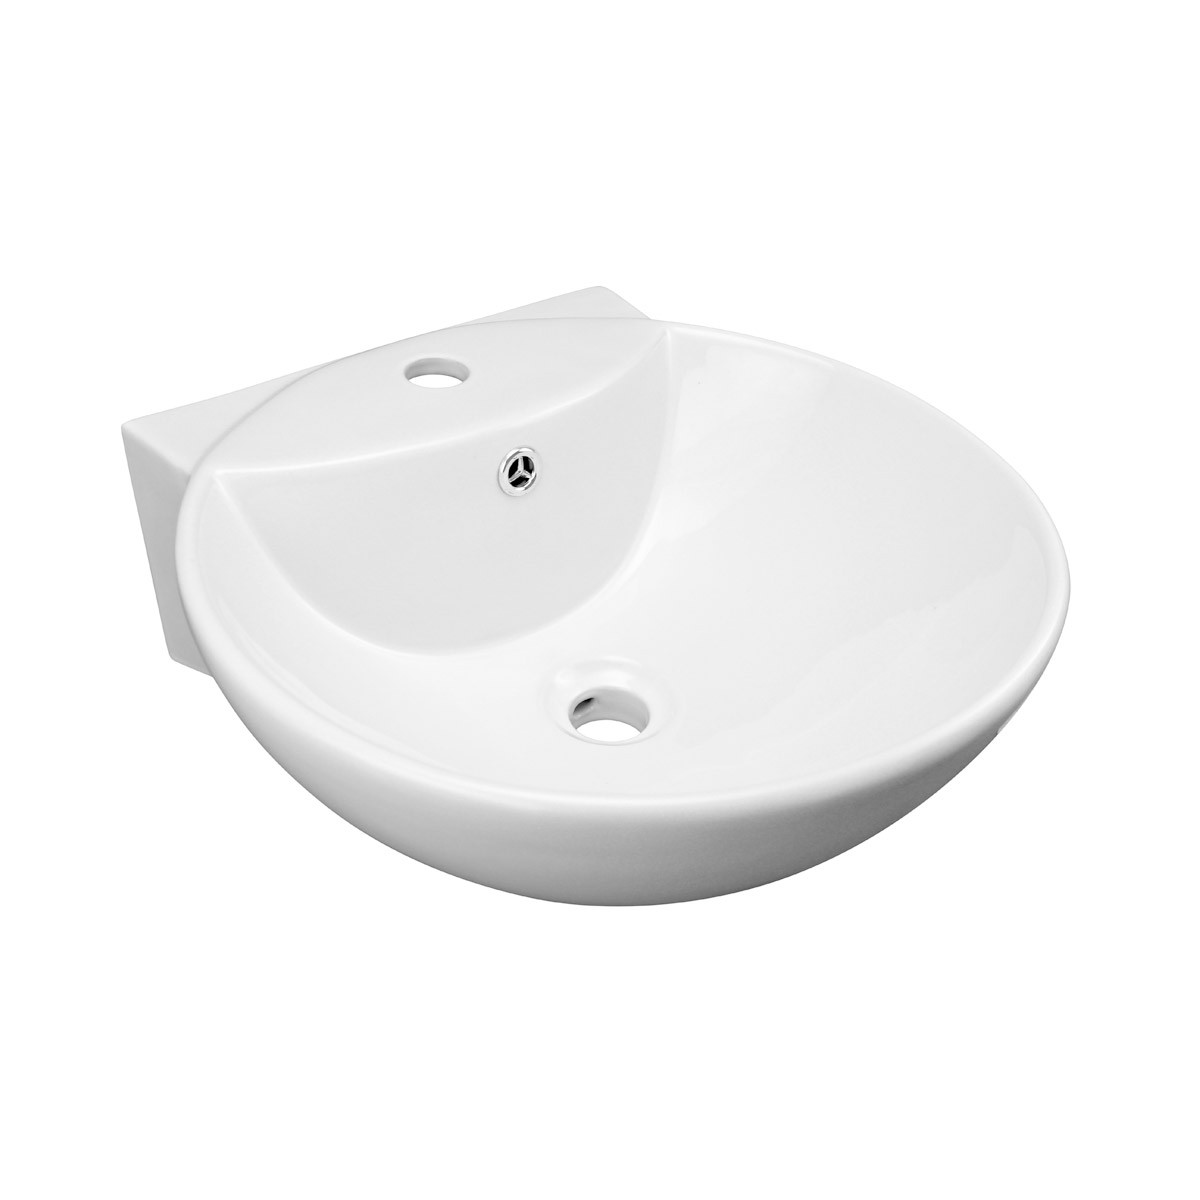 Small Bathroom Sink Vessel White China Wall Mount